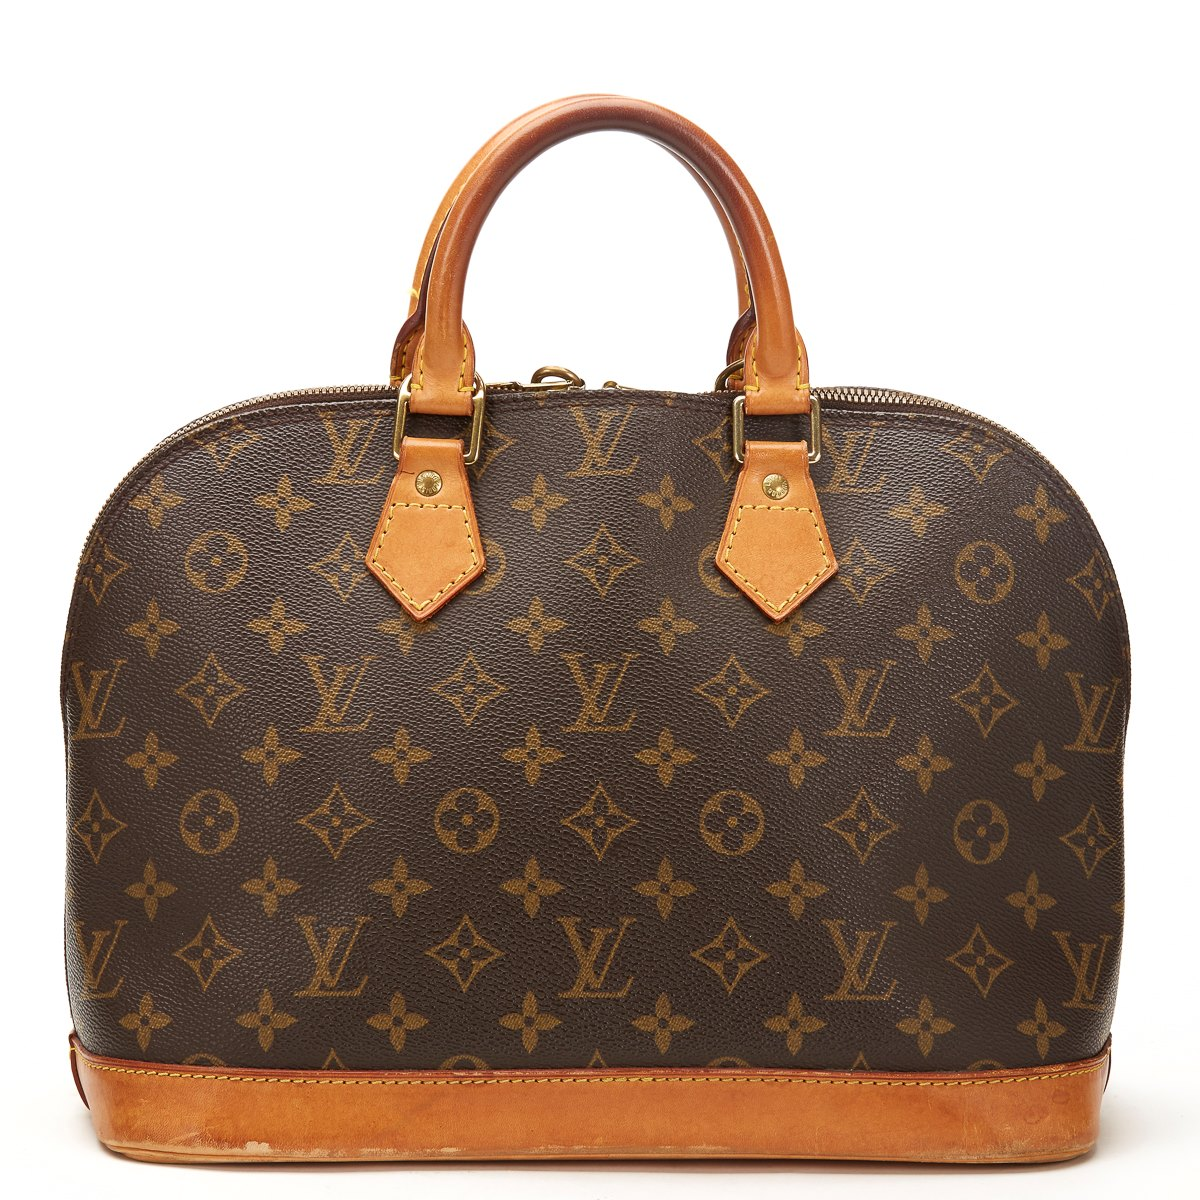 louis vuitton alma pm 1999 hb352 second hand handbags xupes. Black Bedroom Furniture Sets. Home Design Ideas